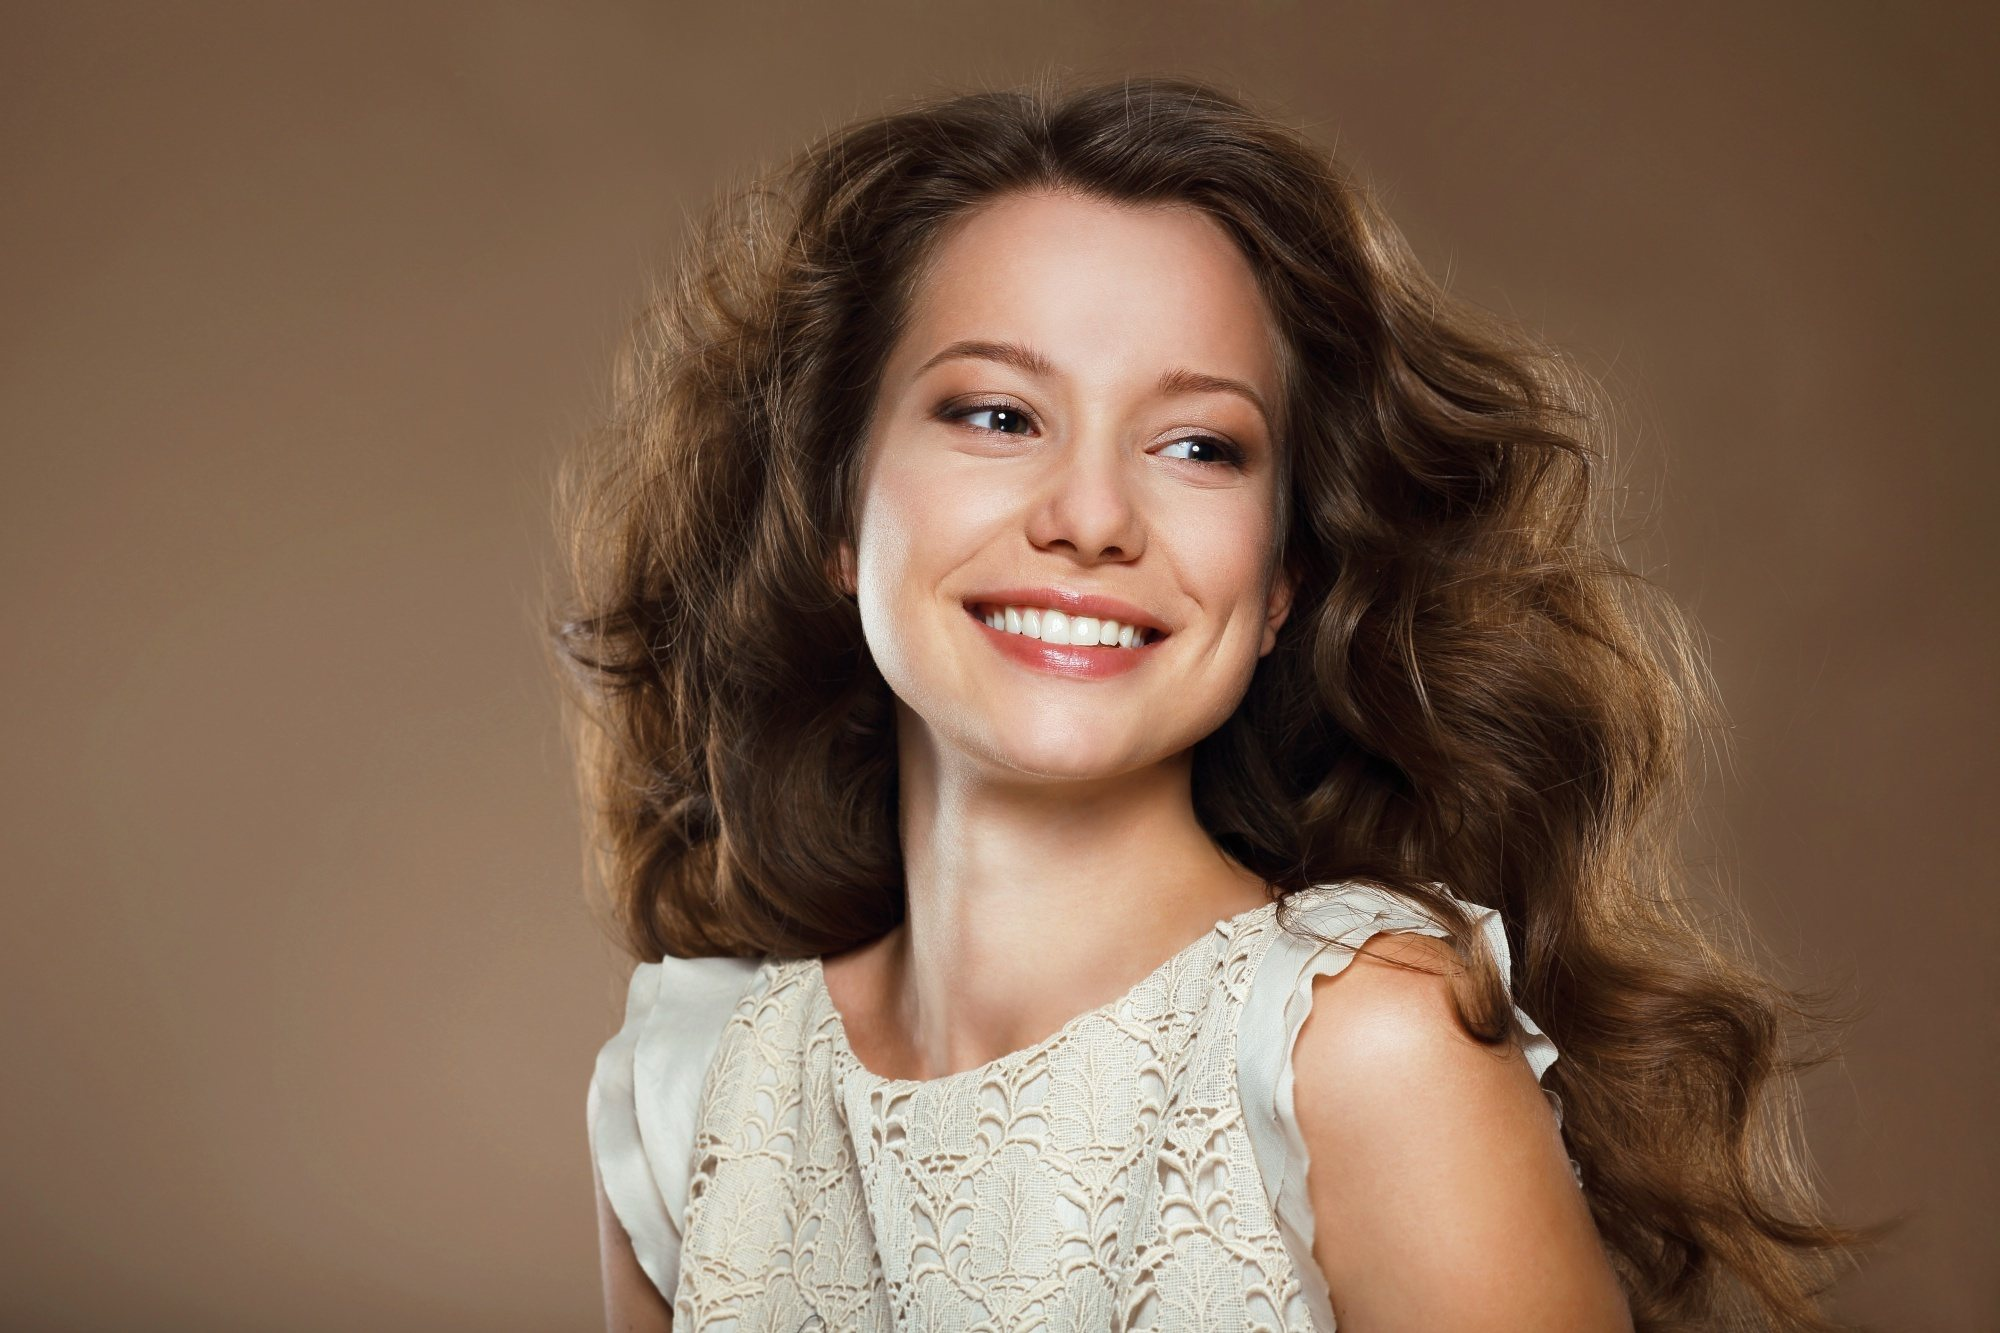 Caramel hair color: Woman with long brown curly hair smiling